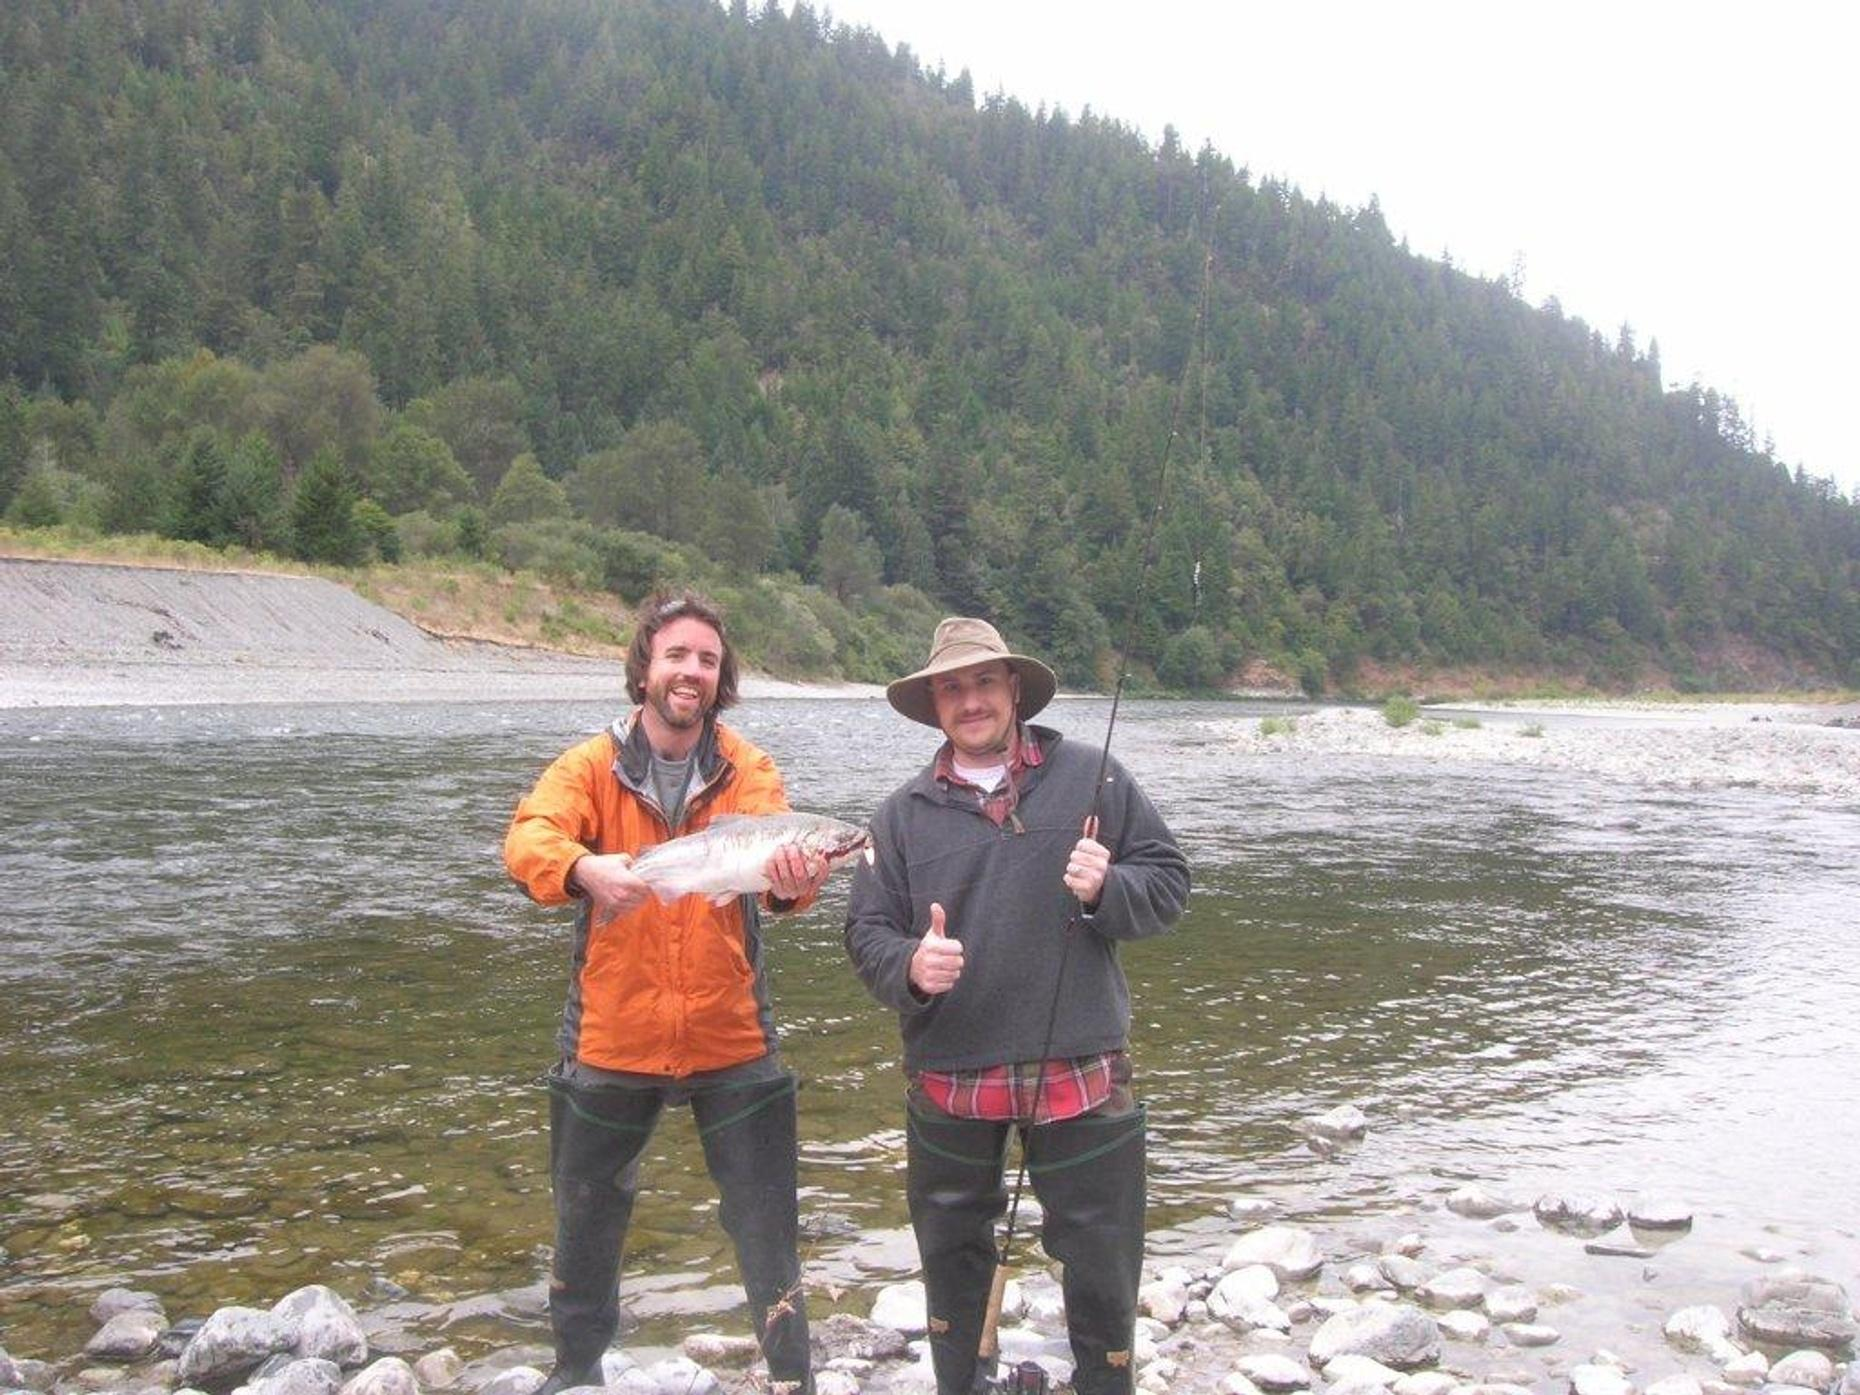 Half Day Private Fishing Trip on the Klamath River